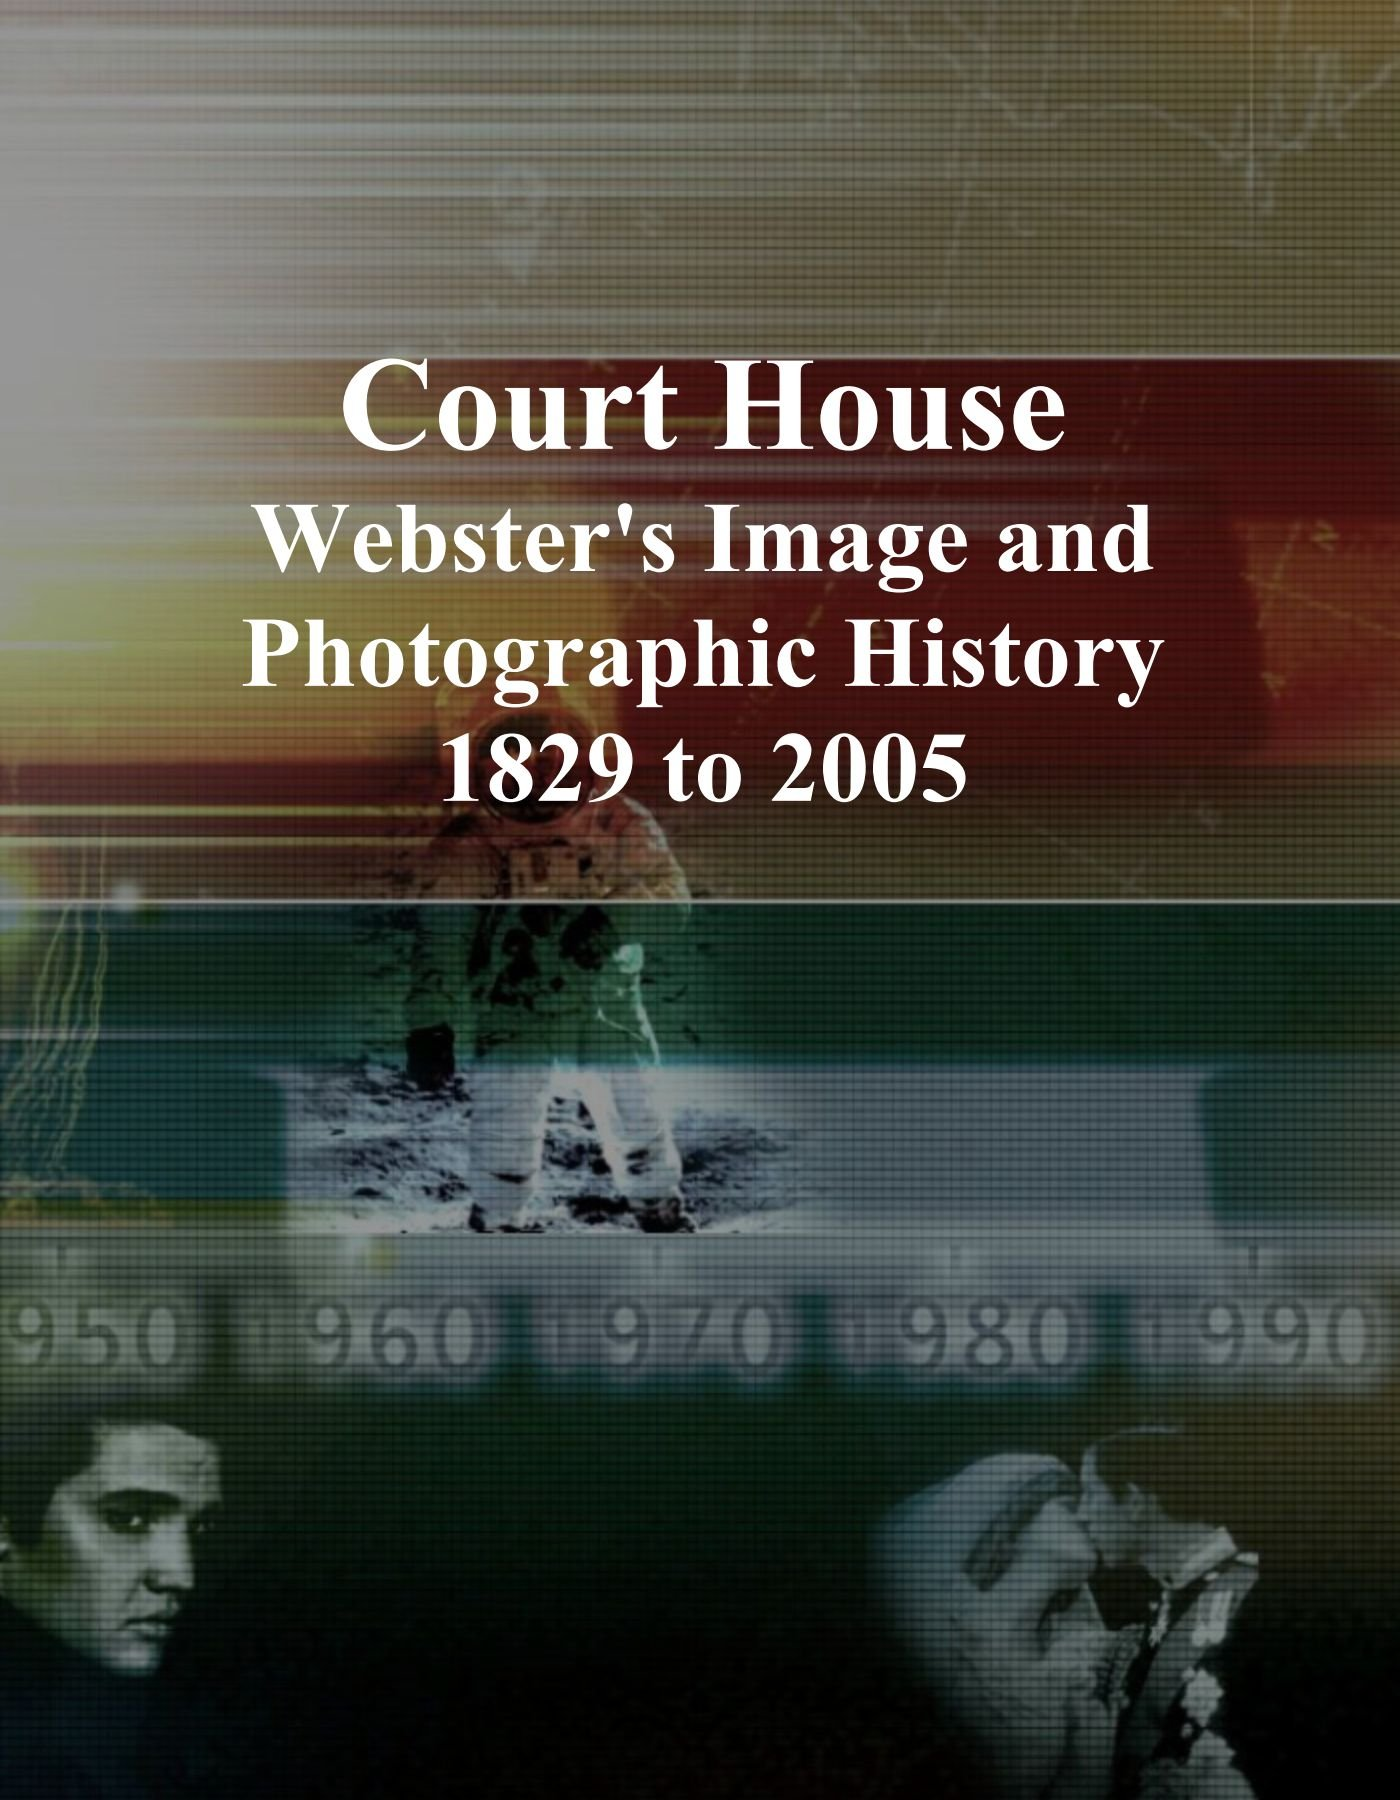 Court House: Webster's Image and Photographic History, 1829 to 2005